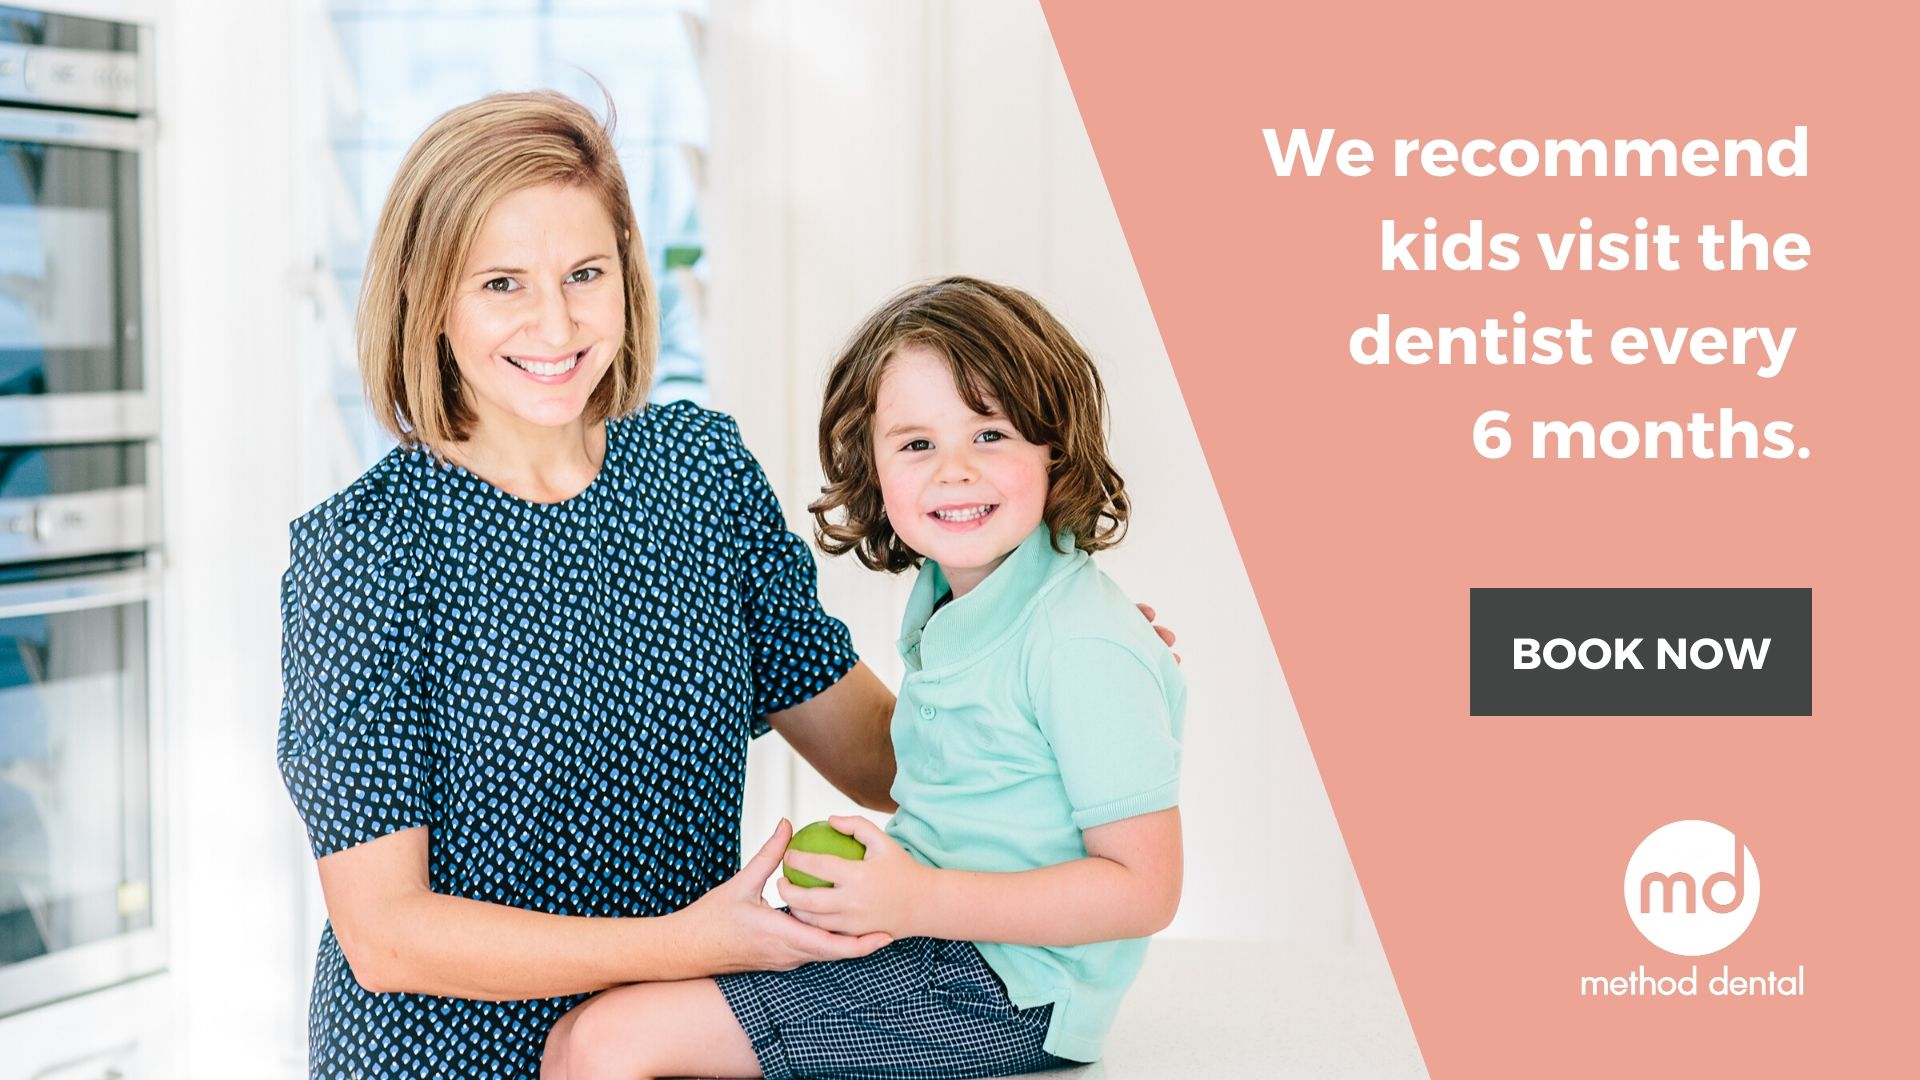 Mum and boy with apple recommending regular dental check ups for kids